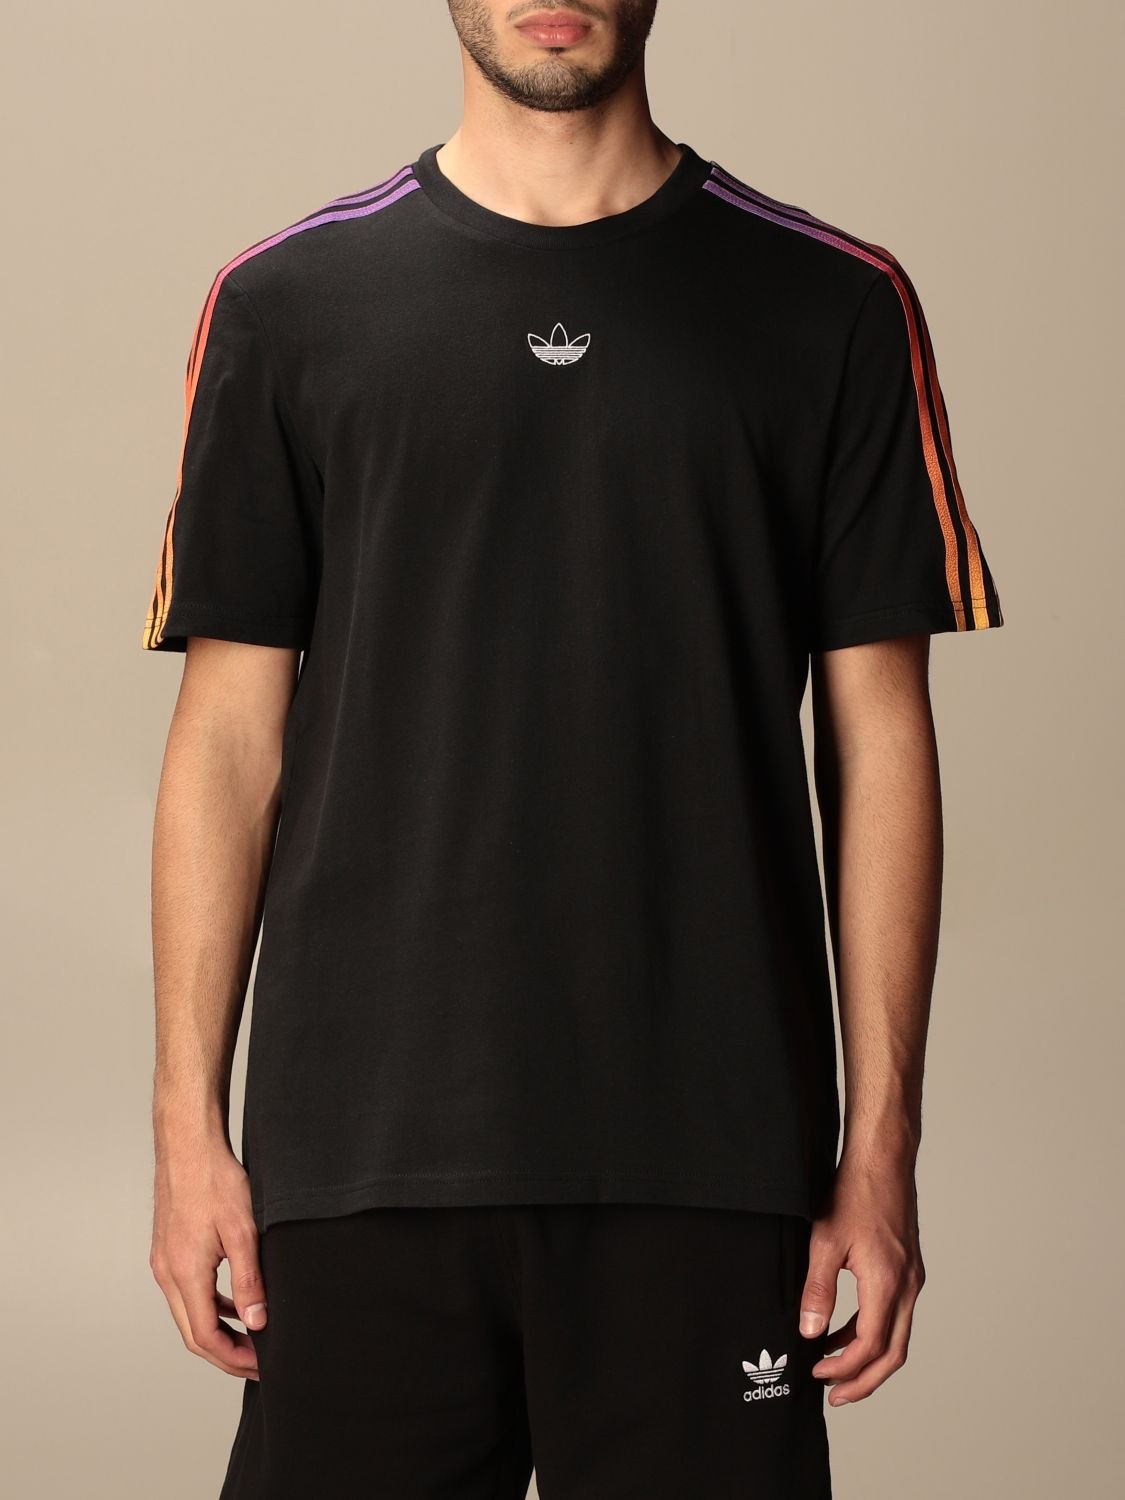 T-shirt Adidas Originals: T-shirt men Adidas Originals black 1